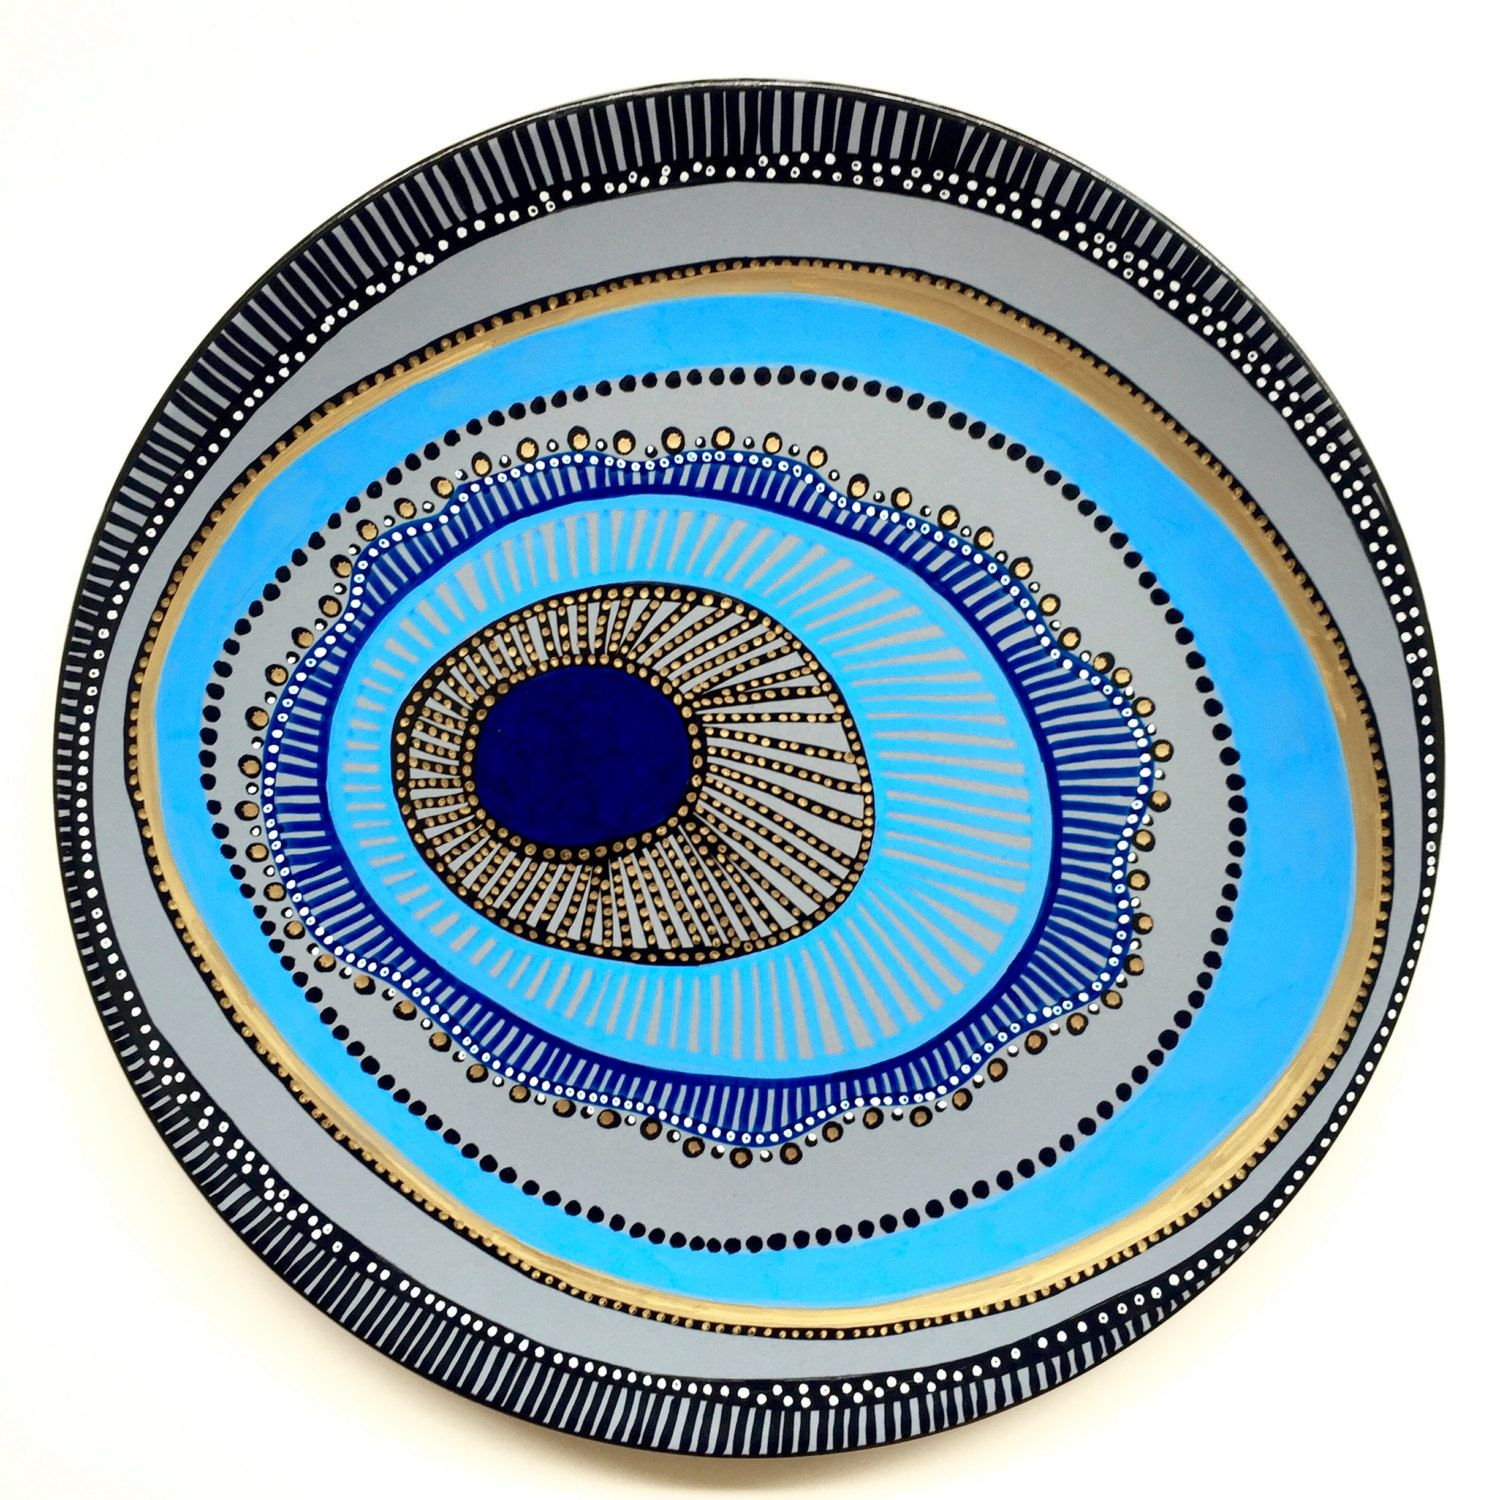 Decorative plate evil eye wall decor original hand painted decorative plate evil eye wall decor original hand painted artwork wall amipublicfo Gallery